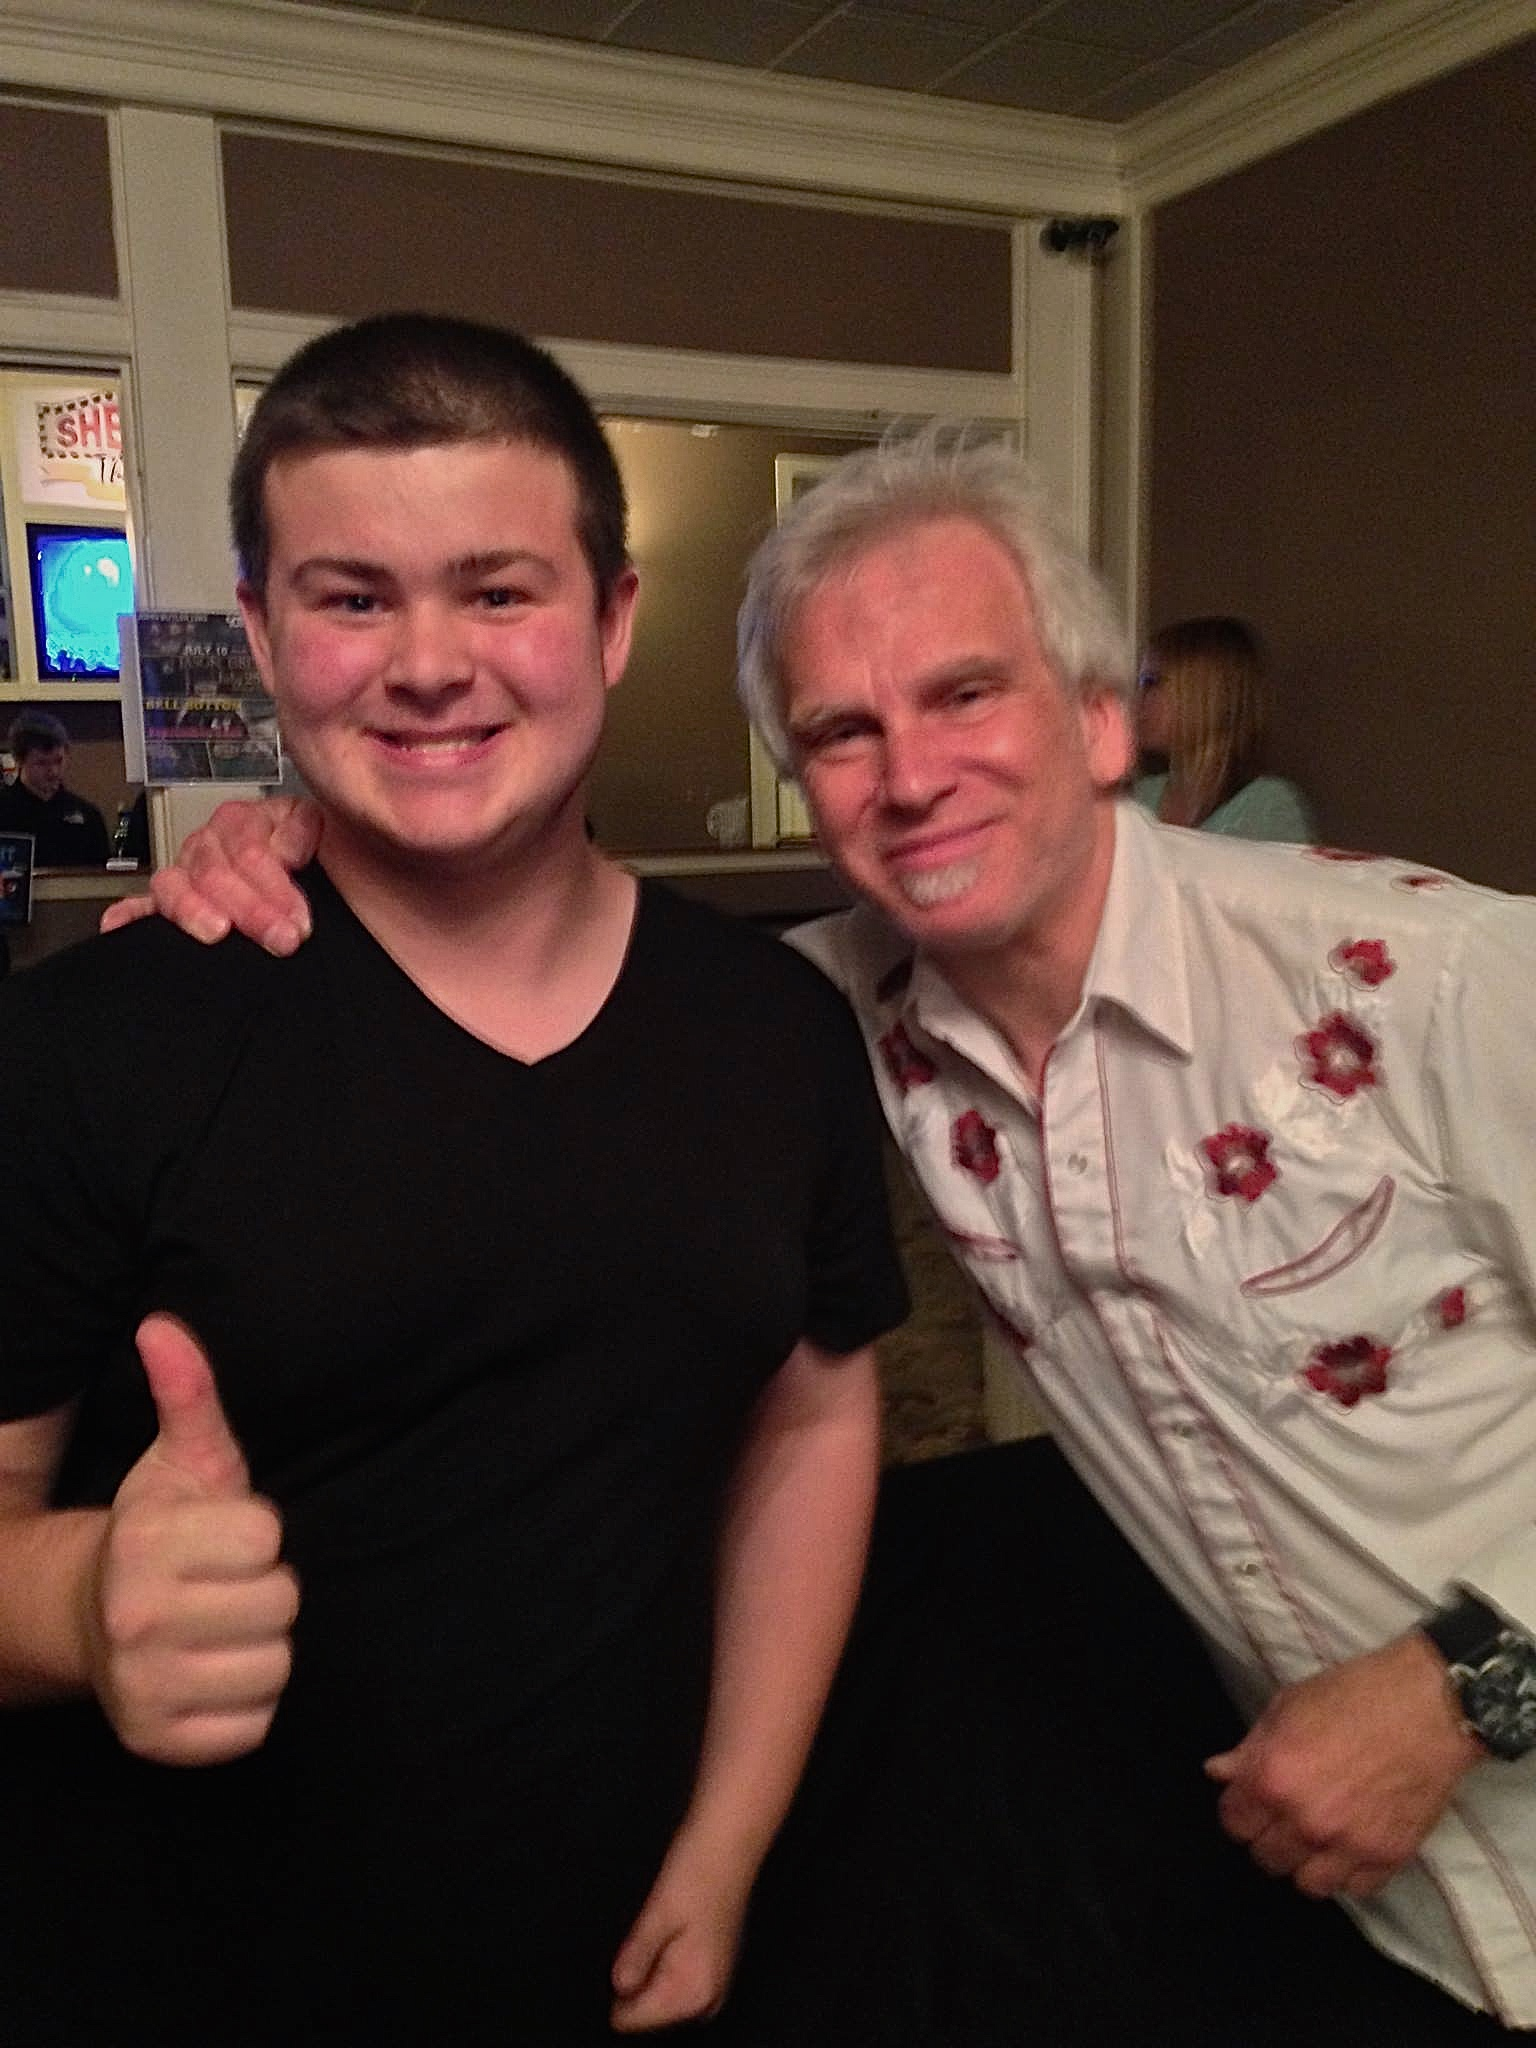 Todd with Matt a young music fan @ Sherman Theater/Gary Clark Jr show